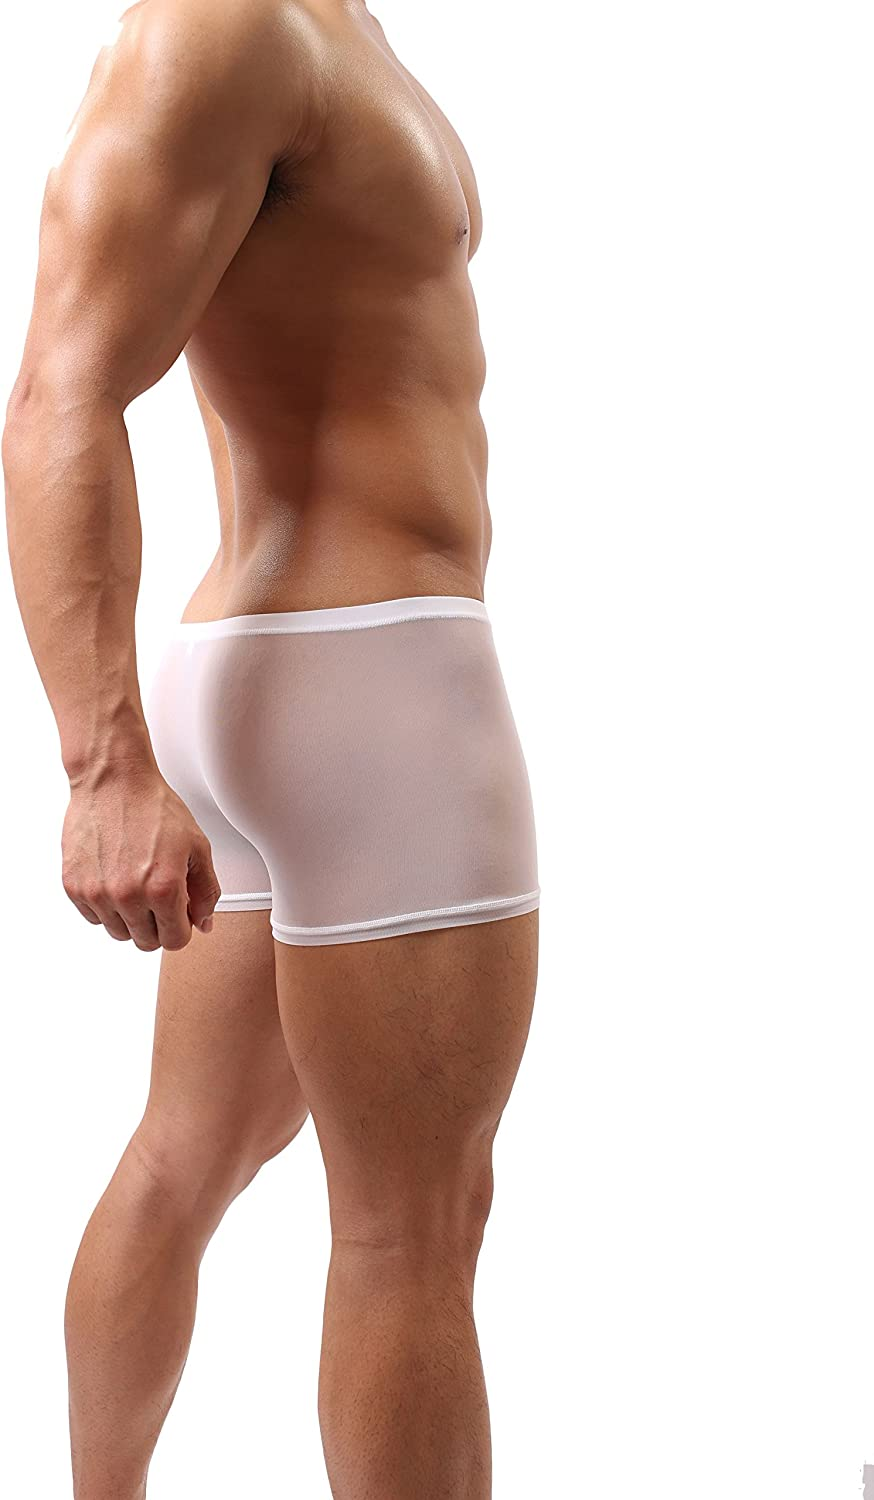 DomiGe Mens Sheer Mesh See-Through Boxer Trunks Underwear White Color (5008)